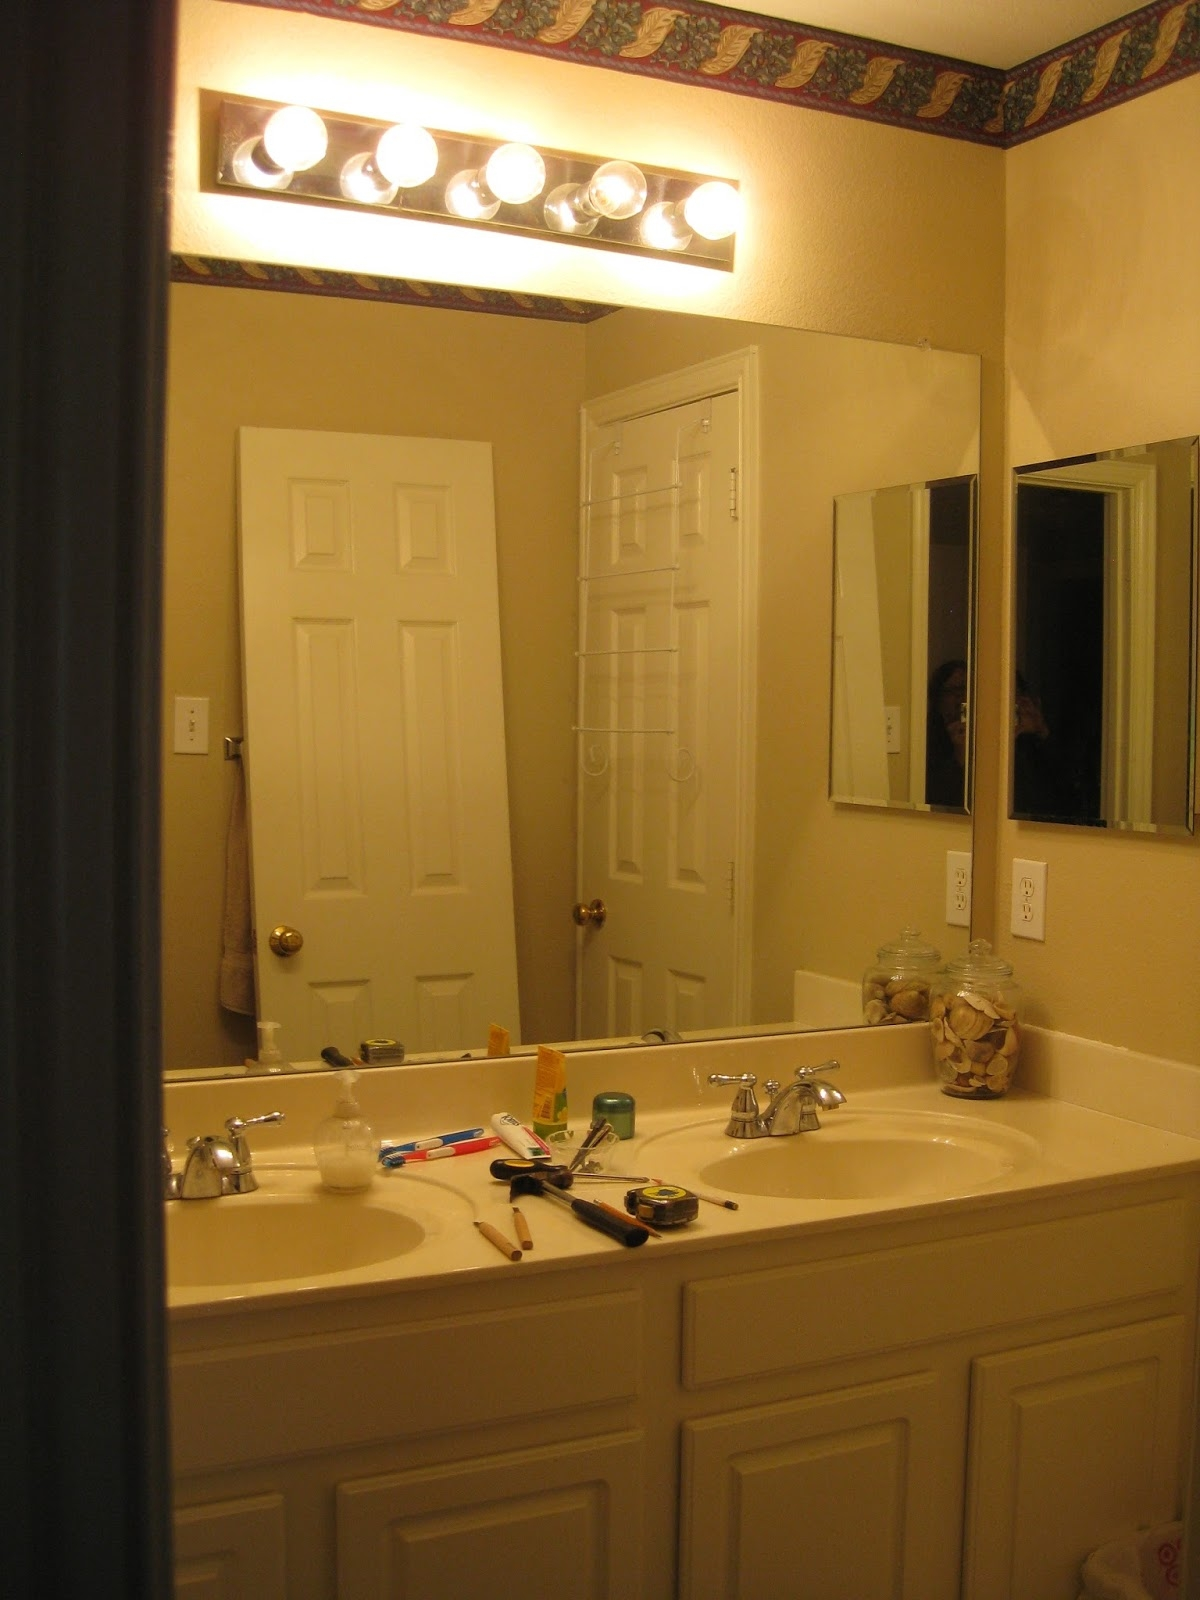 Permalink to Best Light Bulbs For Bathroom Vanity